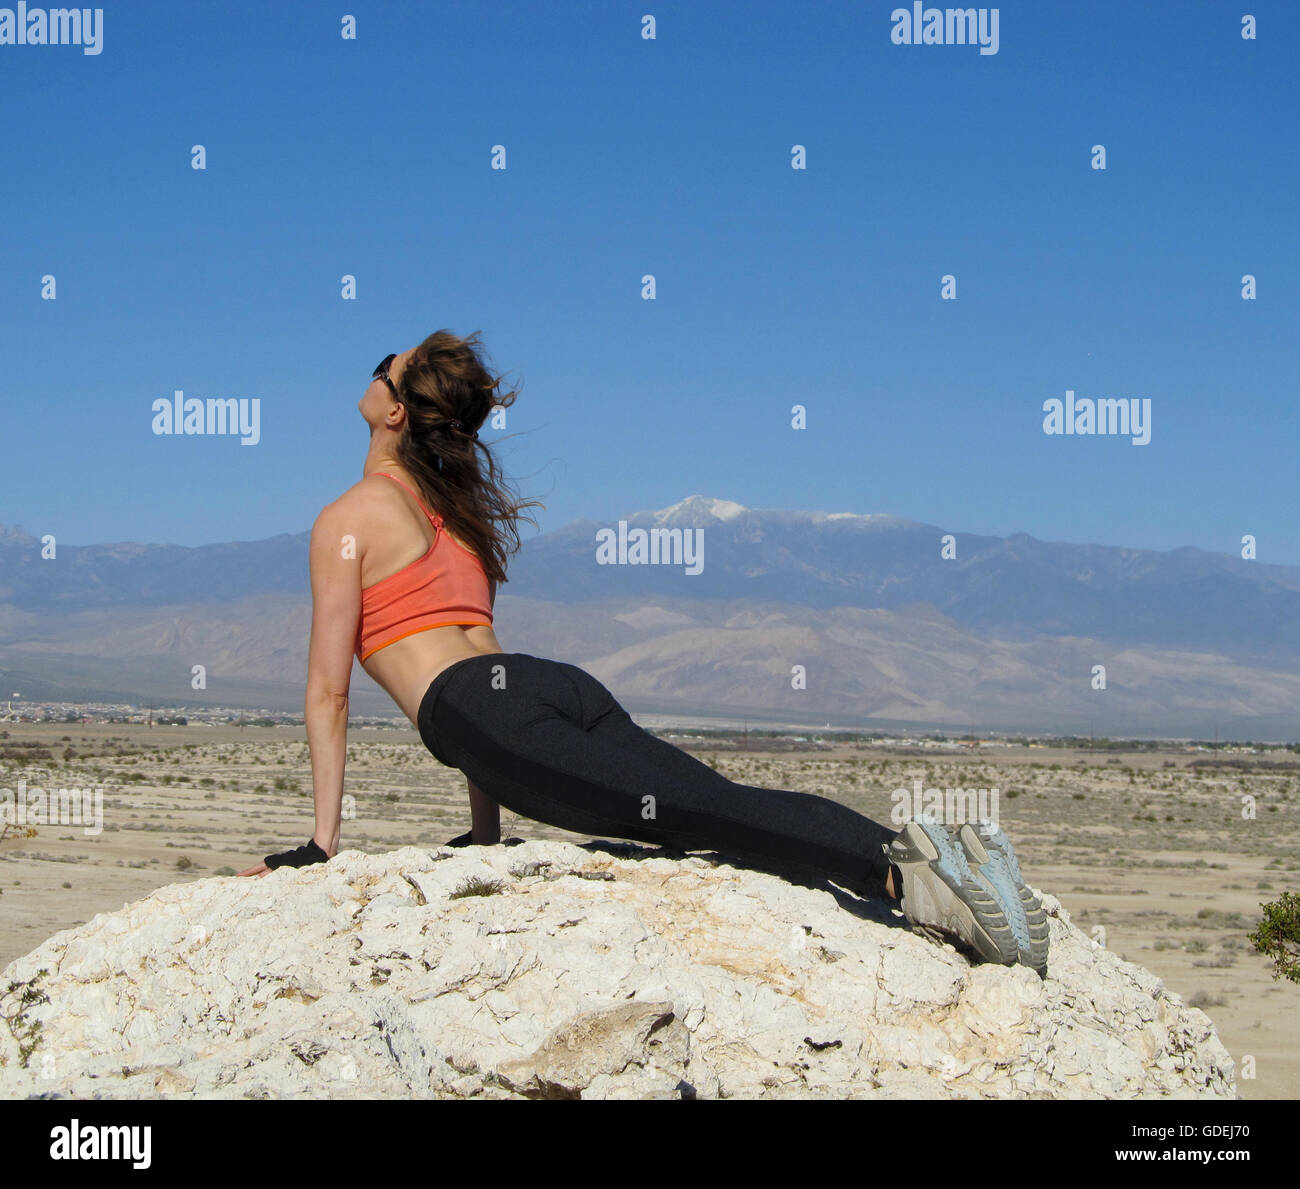 Woman doing an upward facing dog yoga pose on a rock in the desert, Nevada, America, USA - Stock Image